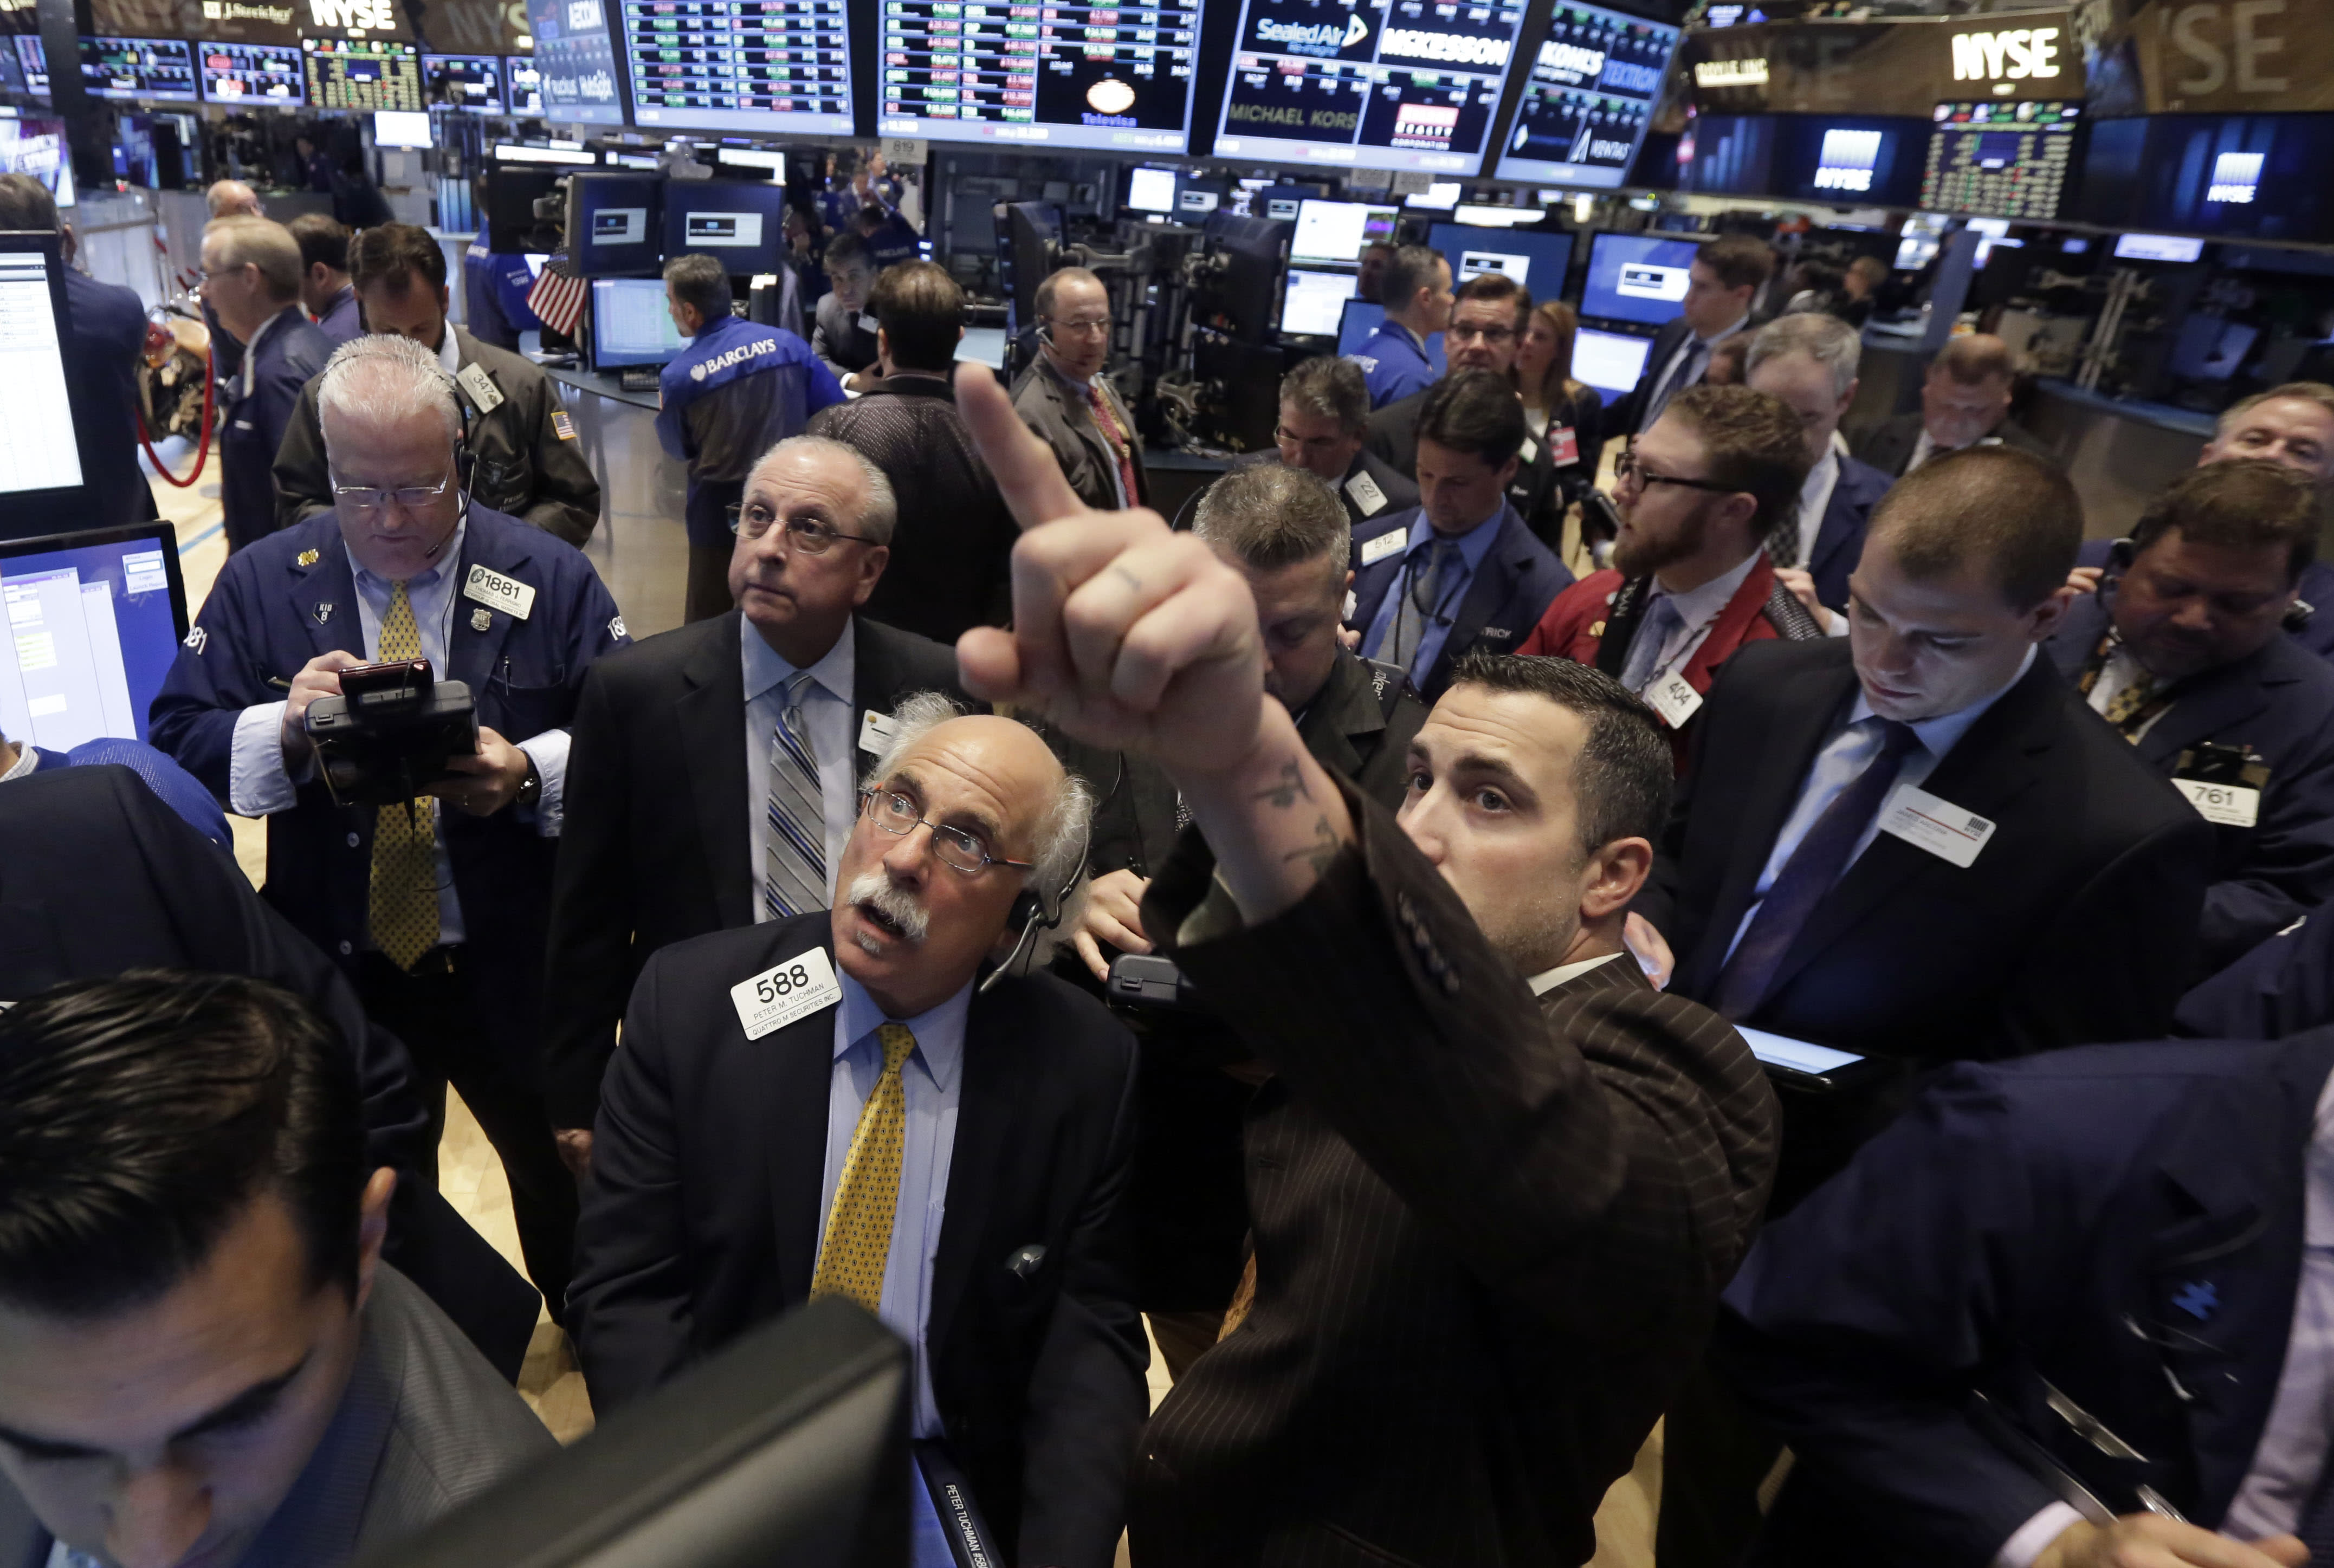 Stocks slide continues; Oil jumps on supply woes; Apple's new Beats